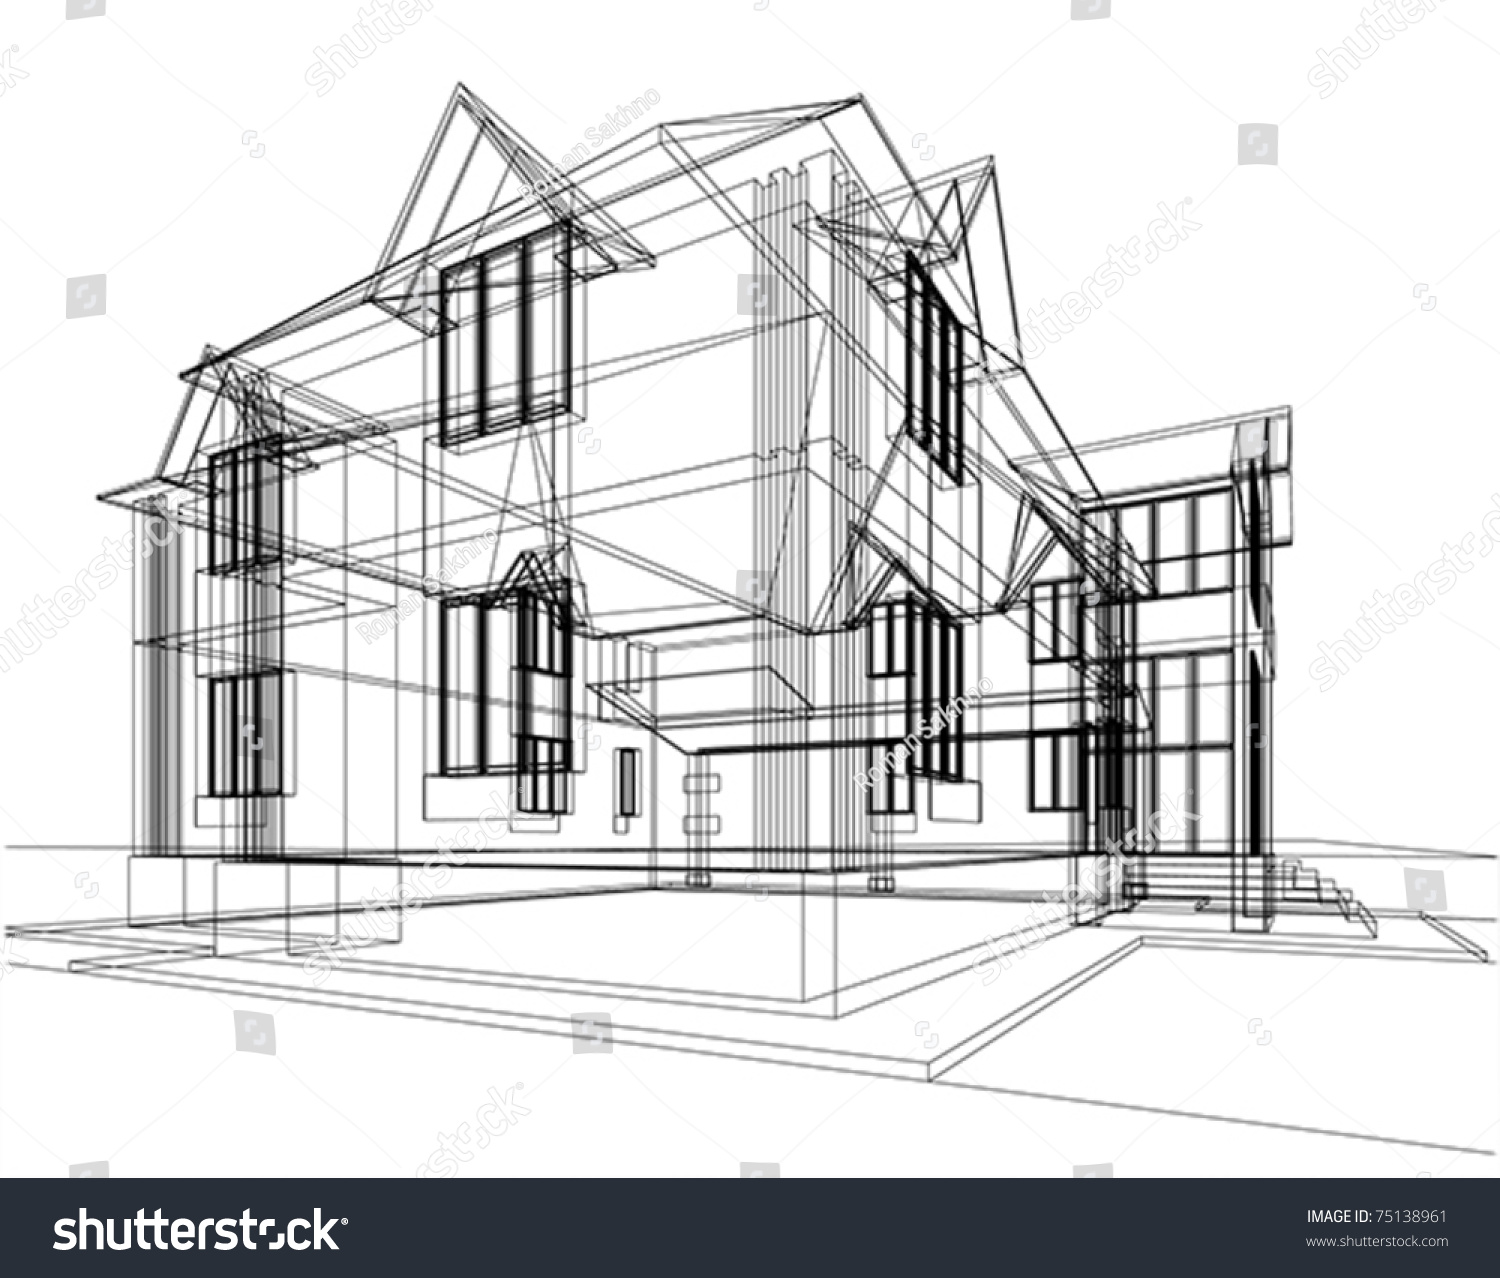 Abstract Sketch House Architectural 3d Illustration Stock